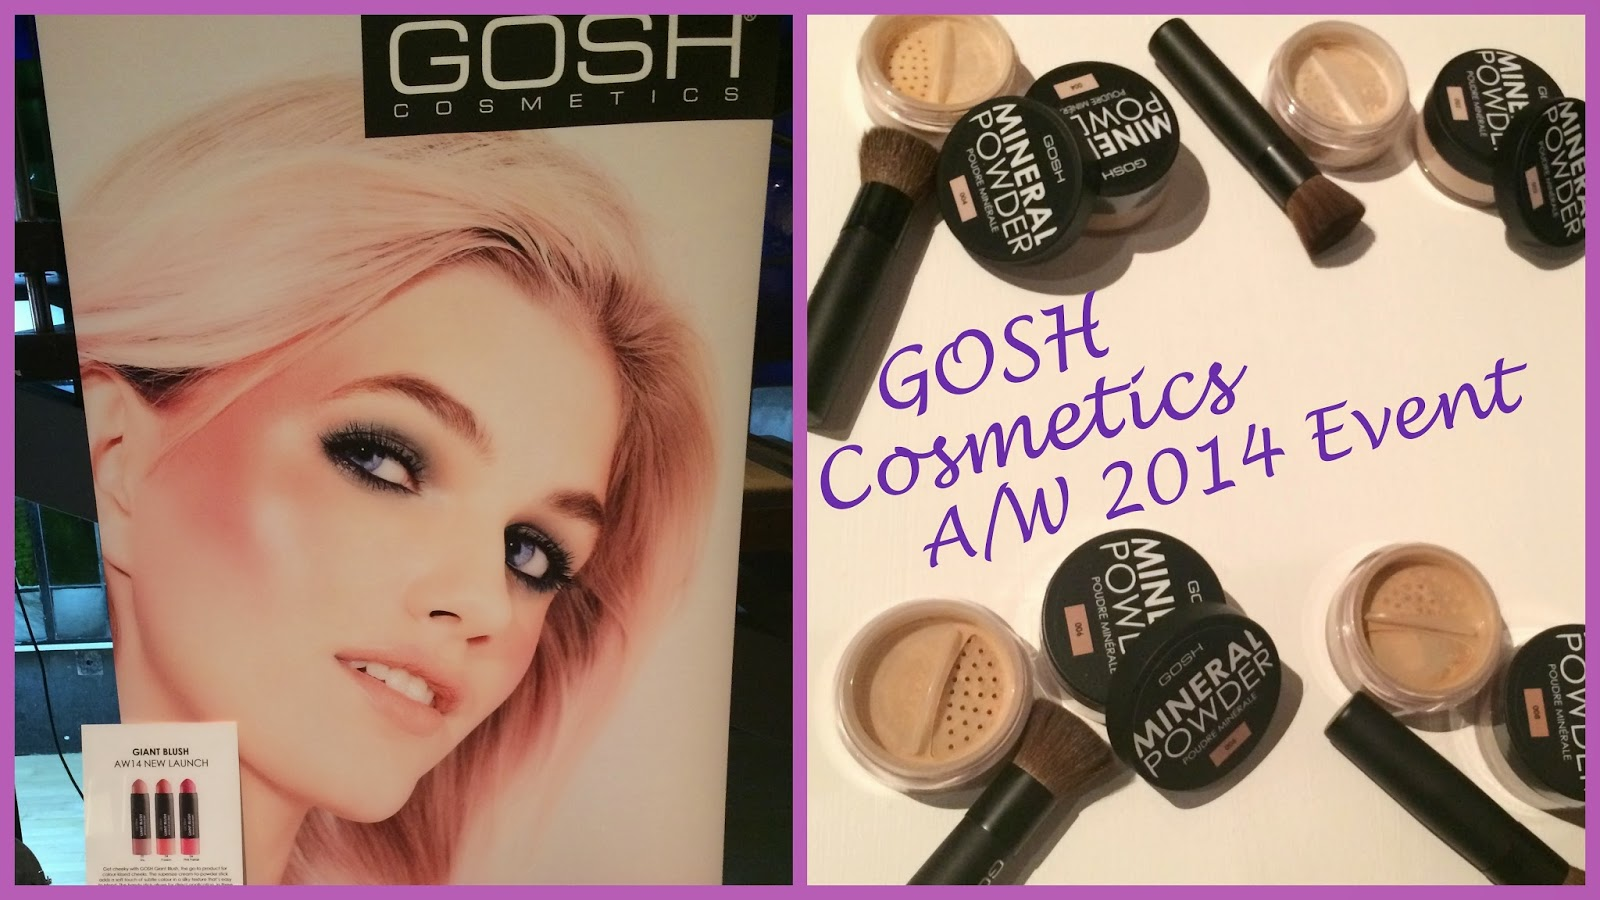 gosh-cosmetics-event-2014-autumn-winter